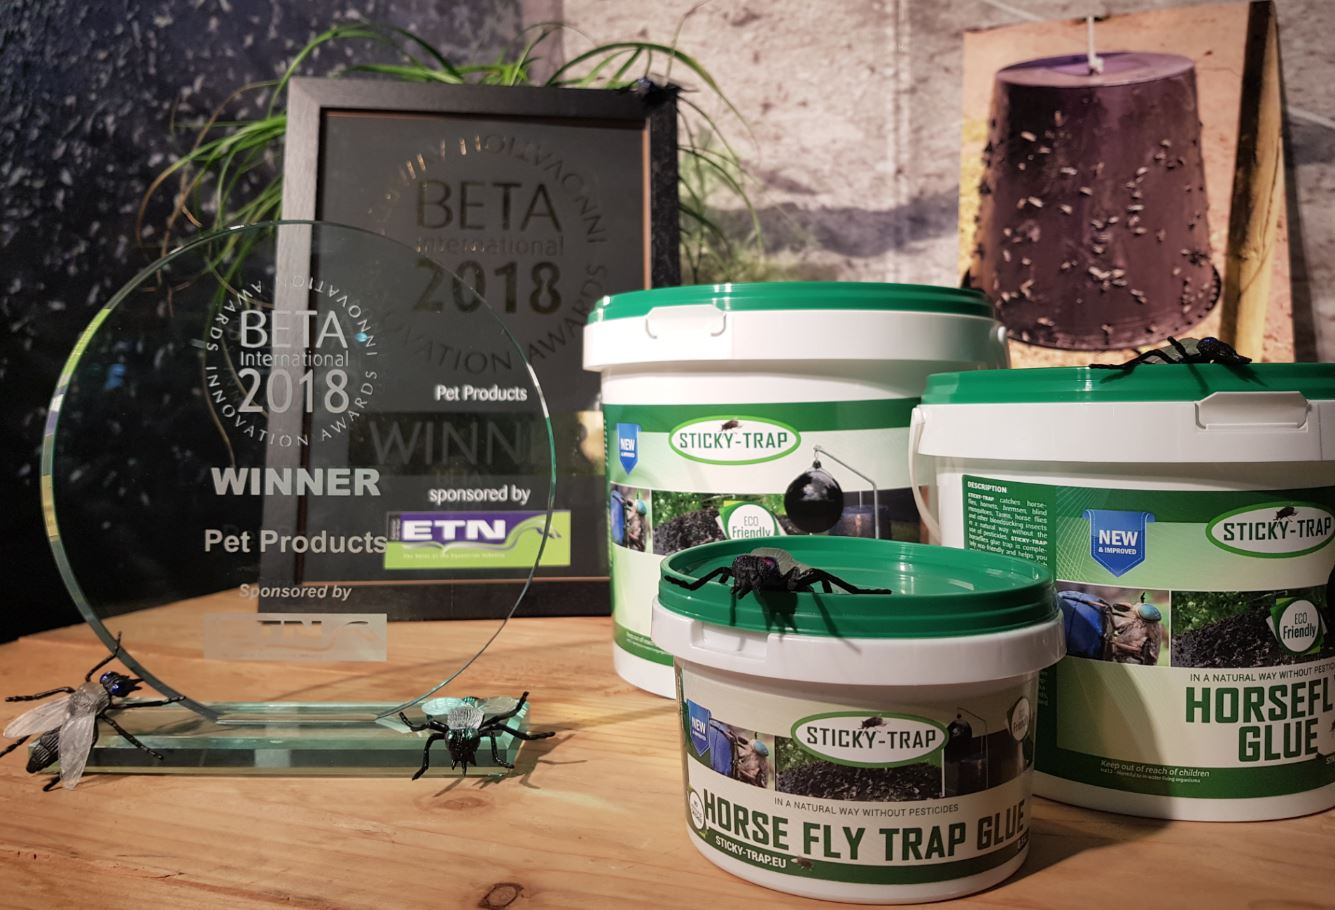 Beta Horse product of the year